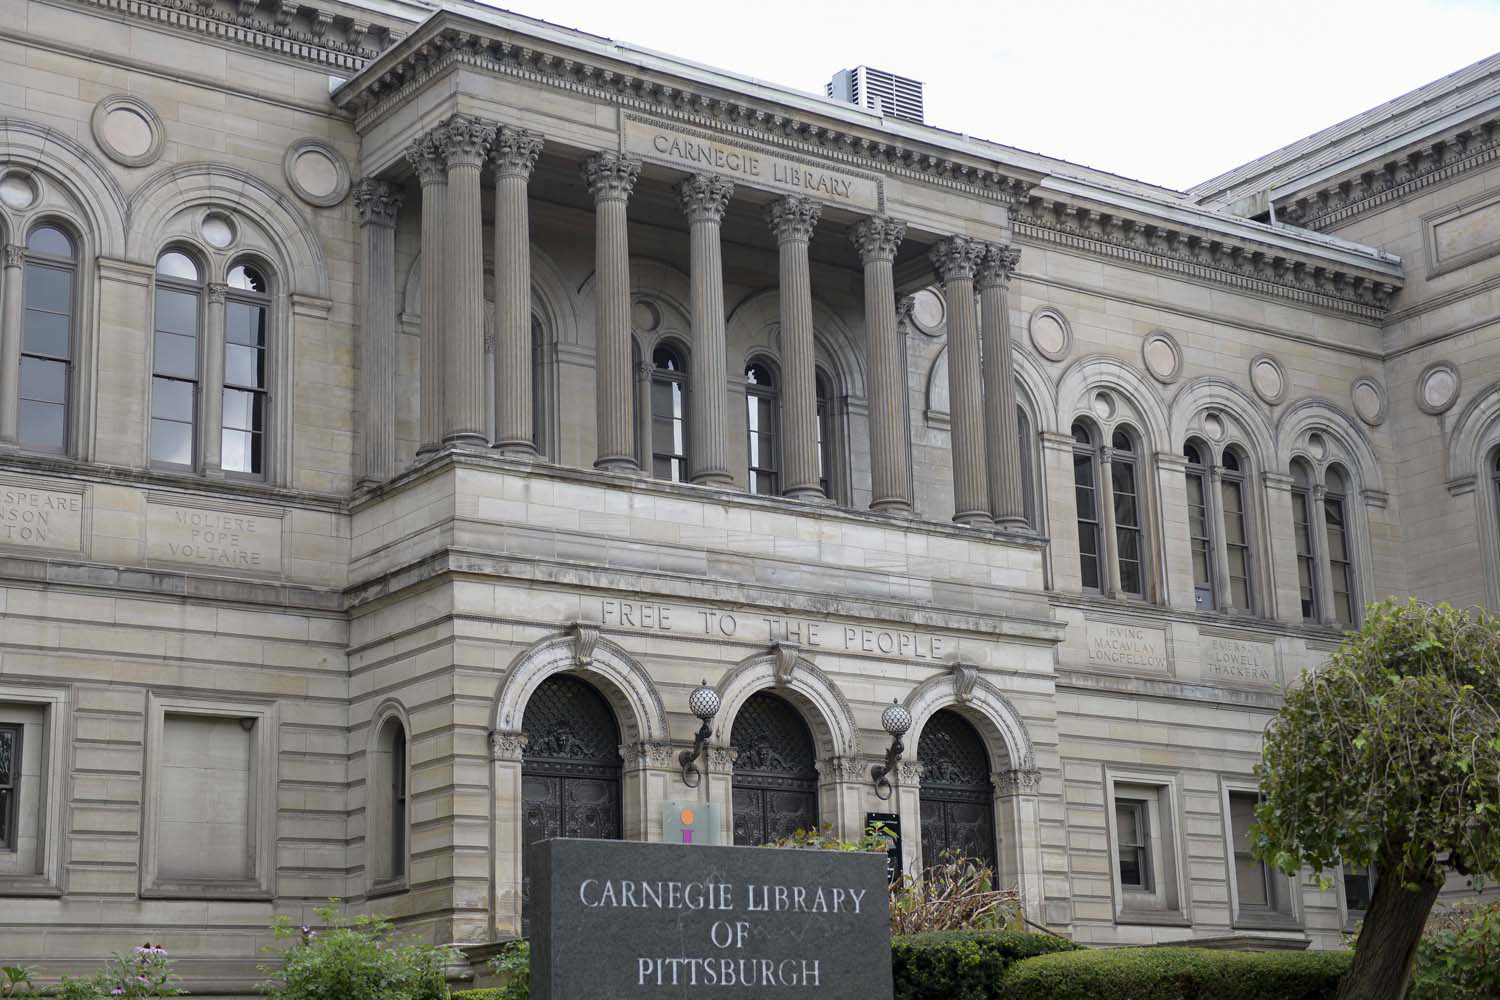 The Carnegie Library of Pittsburgh.